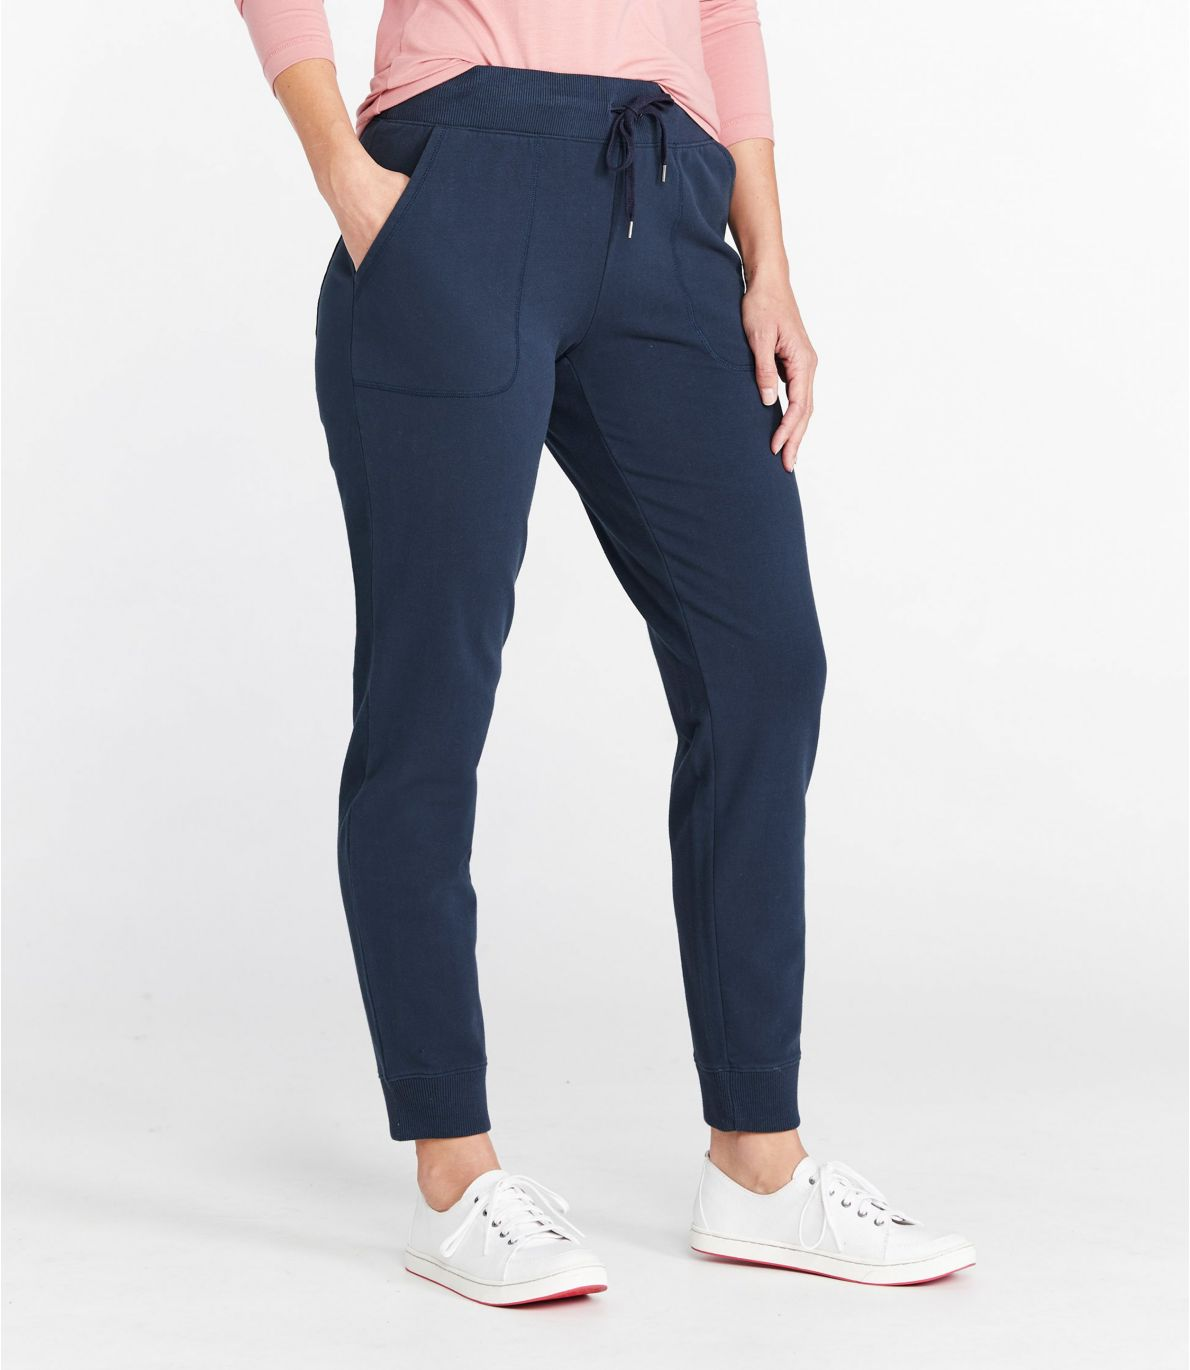 Women's Ultrasoft Sweats, Slim-Leg Jogger